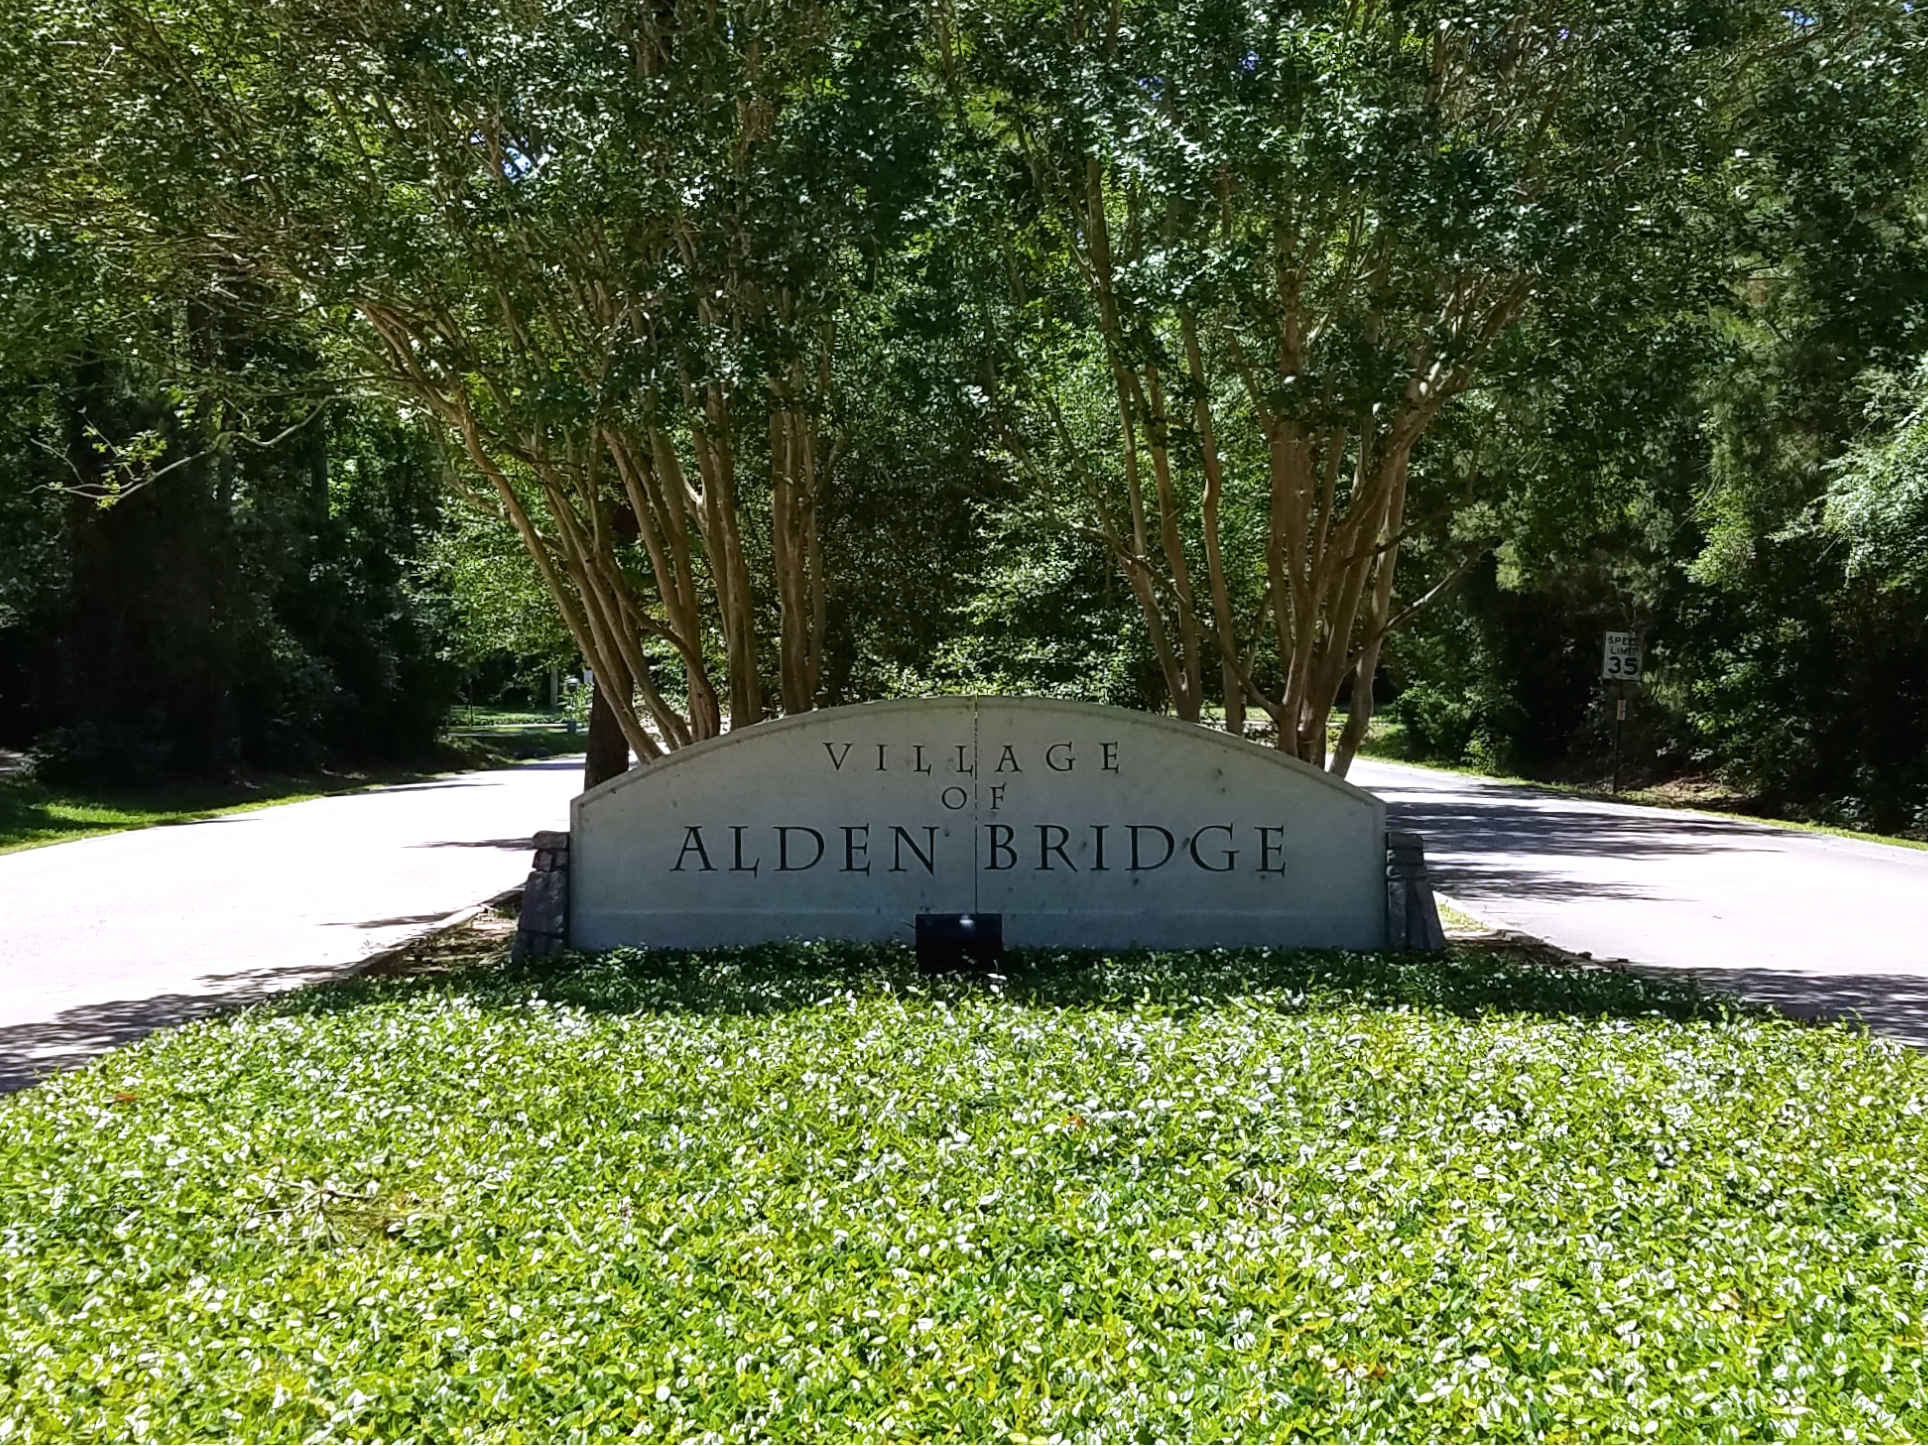 Village of Alden Bridge Entrance